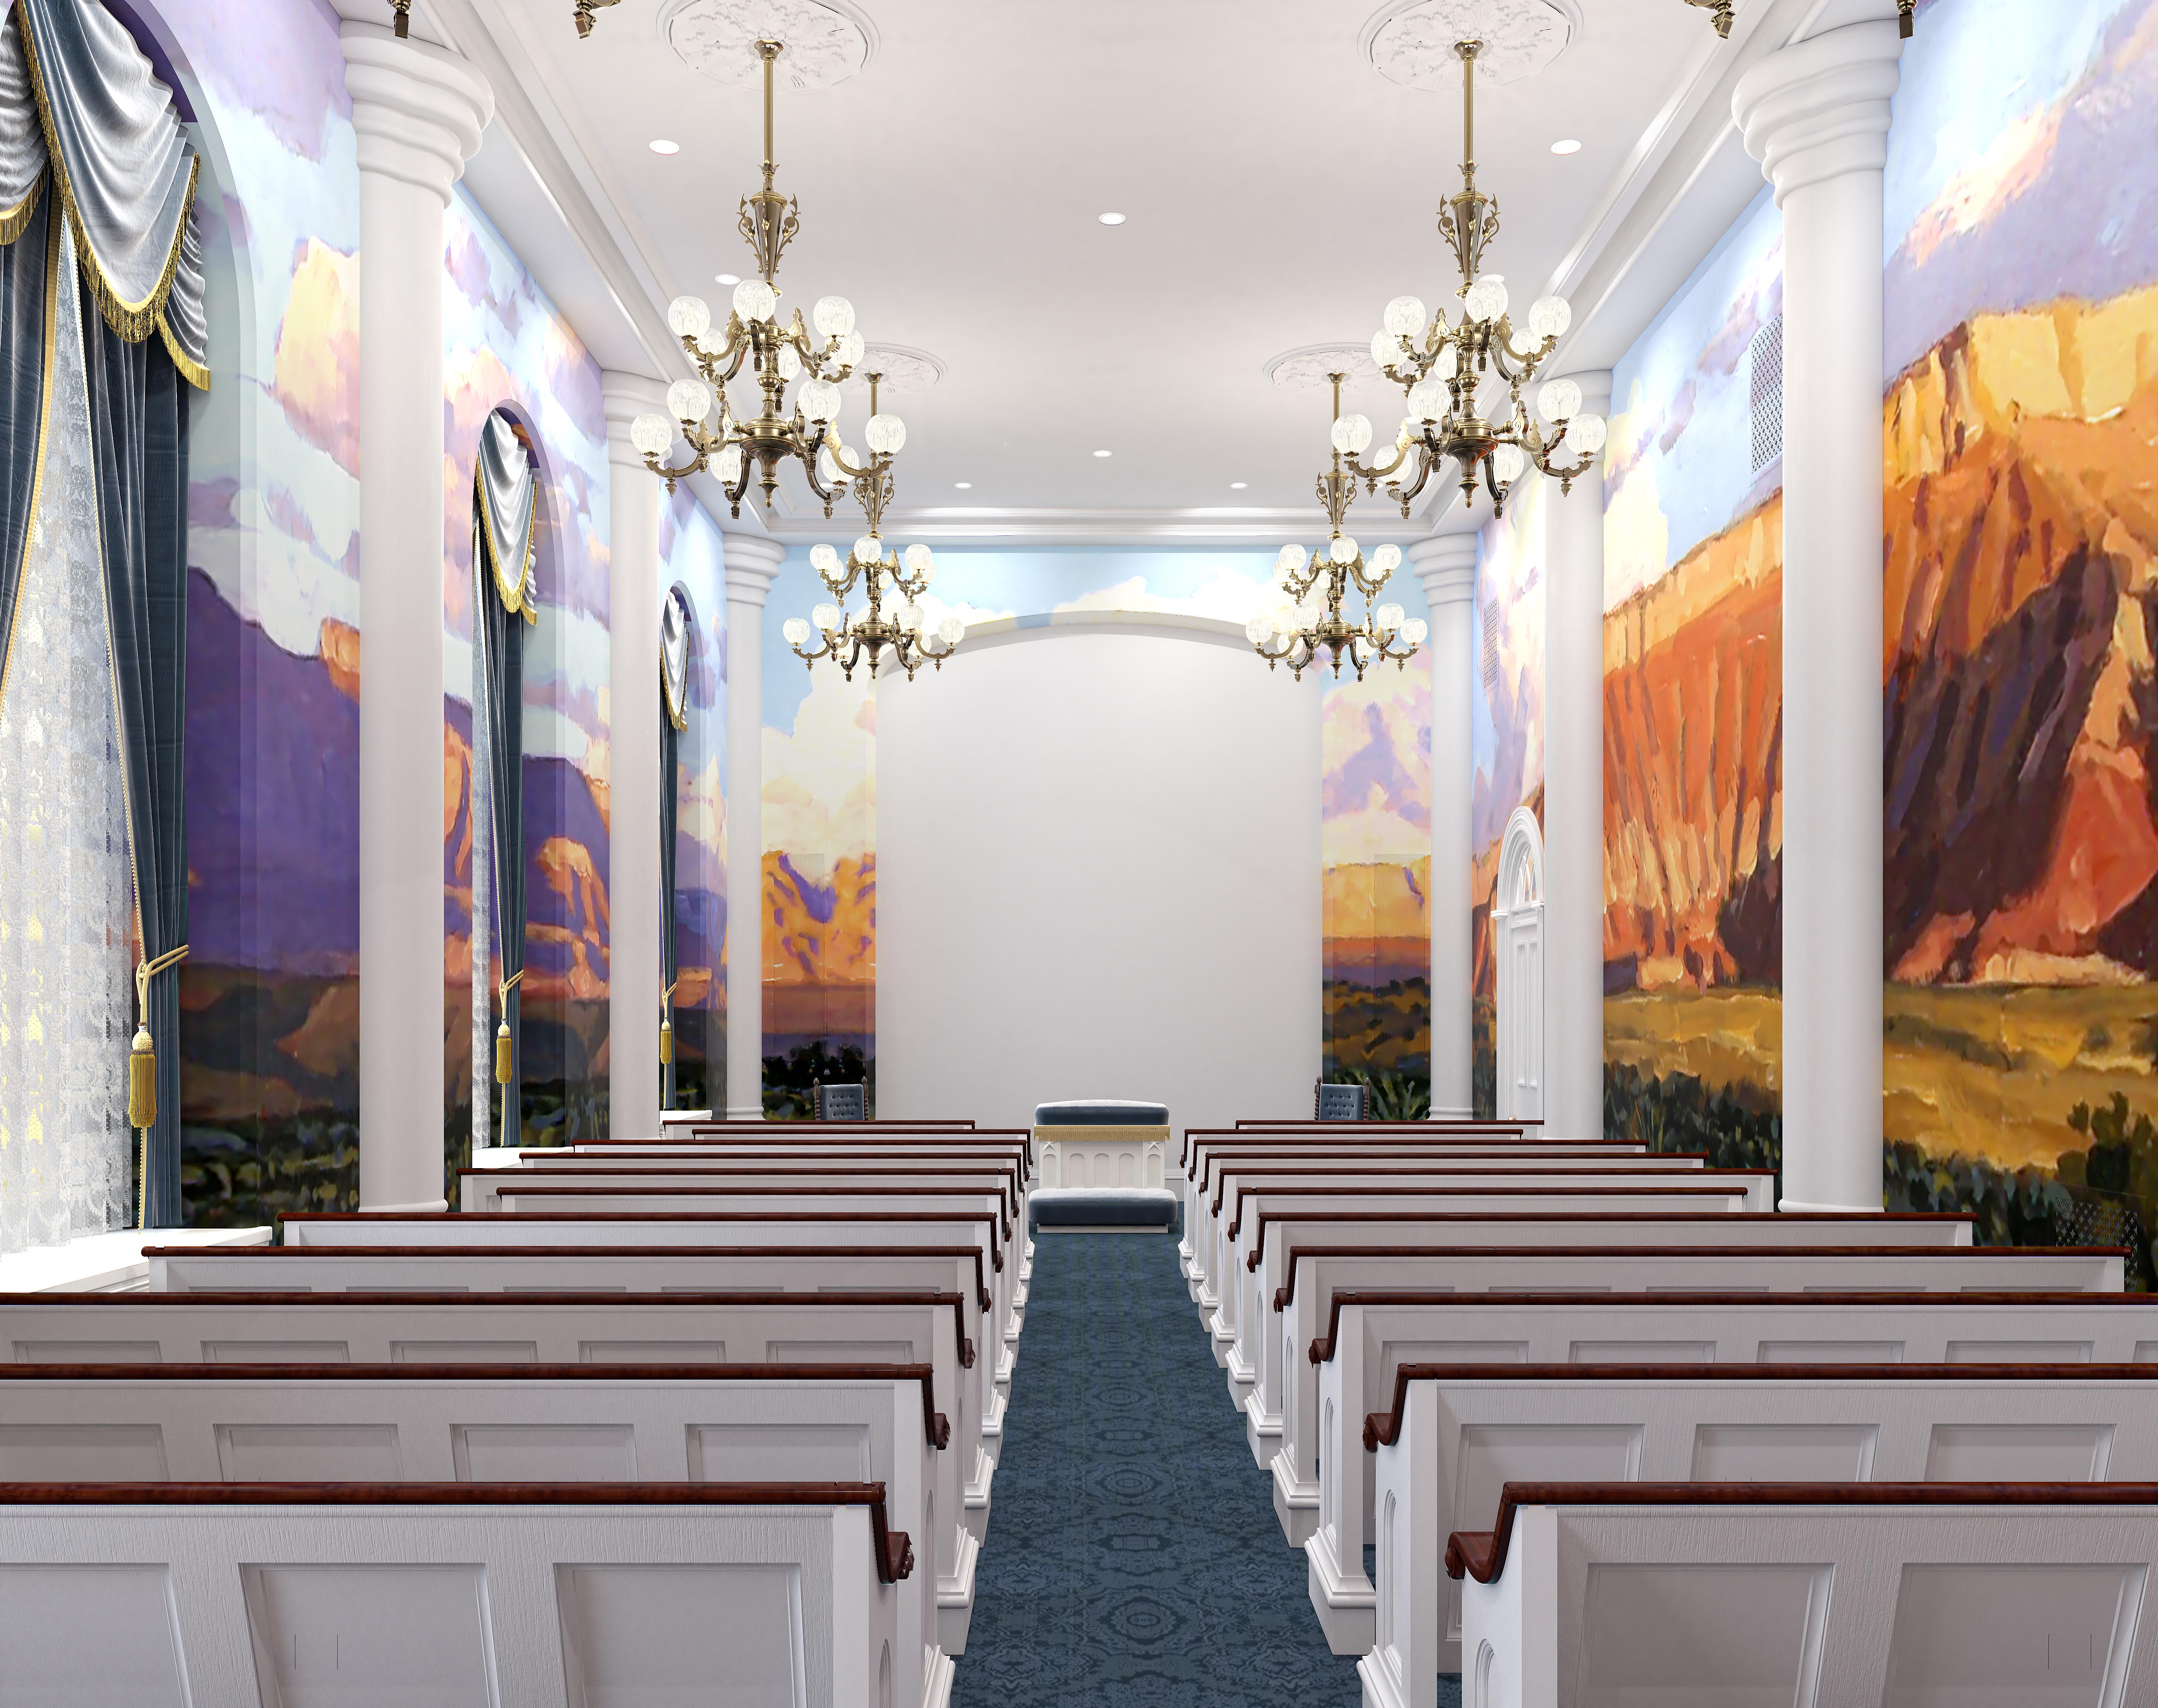 A rendering of an instruction room in the St. George Utah Temple. The temple will close Nov. 4 for extensive renovations.